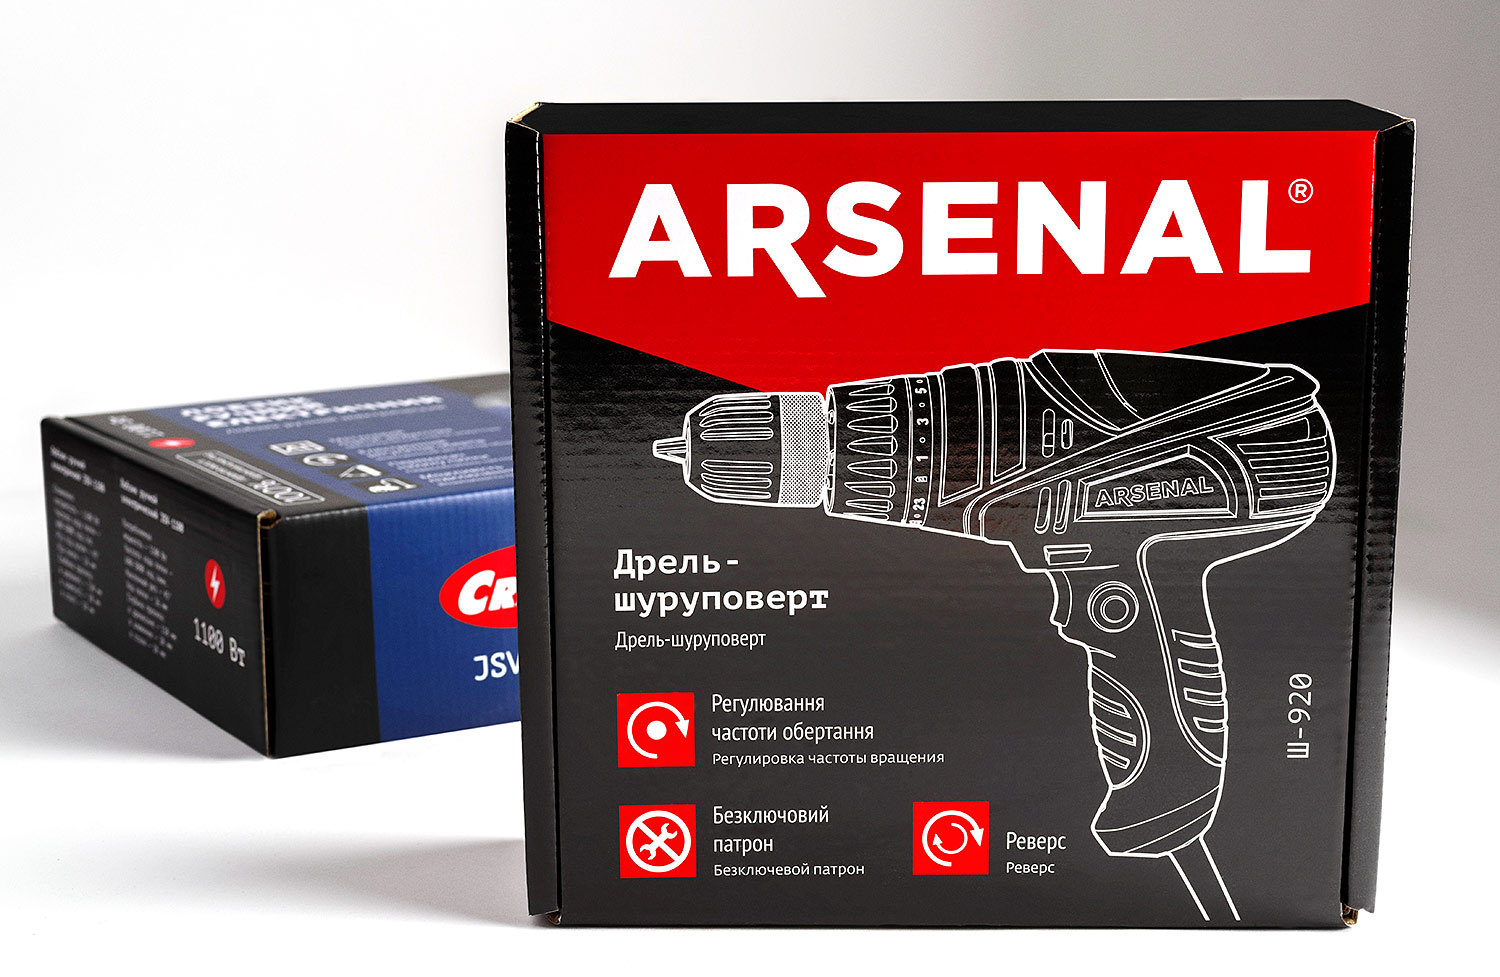 Packaging design for construction electric power tools. Icons design for tools Arsenal and Craft.